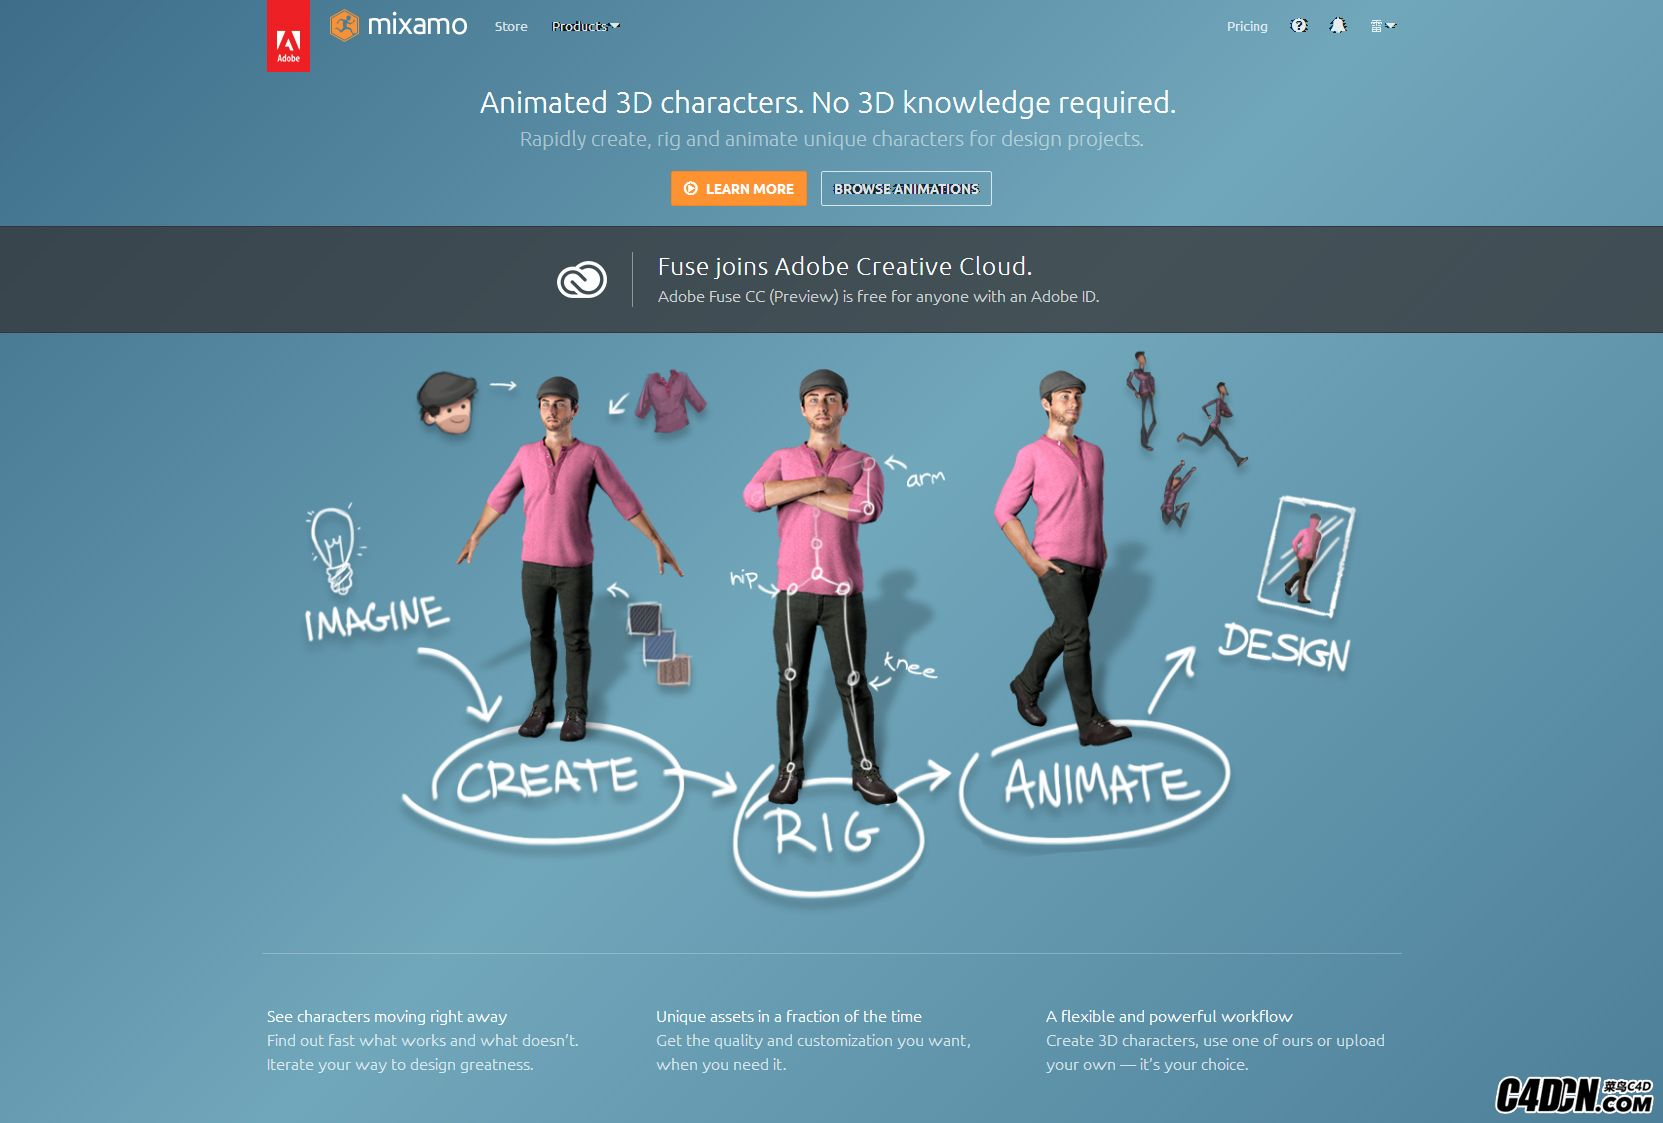 3D Animation Online Services, 3D Characters, and C.jpg